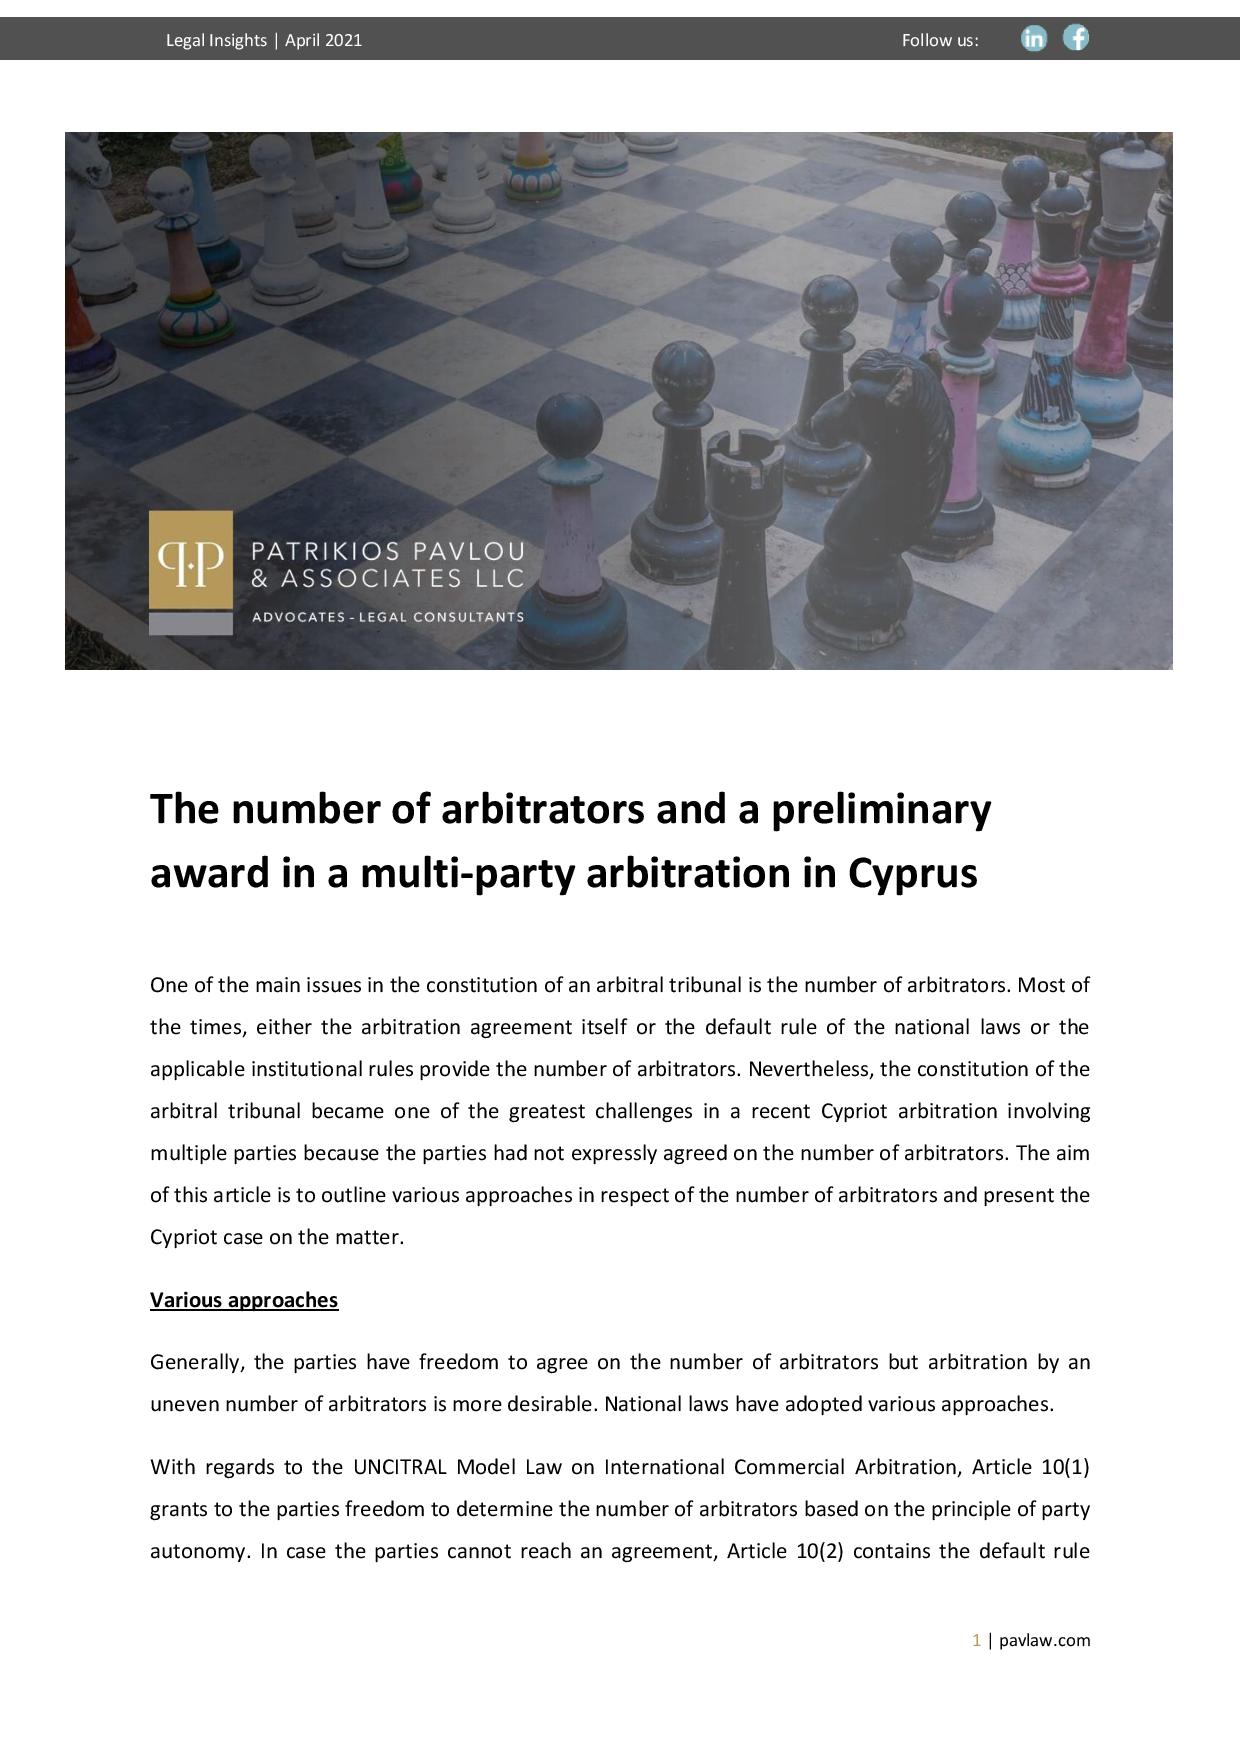 Patrikios Pavlou & Associates LLC: The number of arbitrators and a preliminary award in a multi-party arbitration in Cyprus